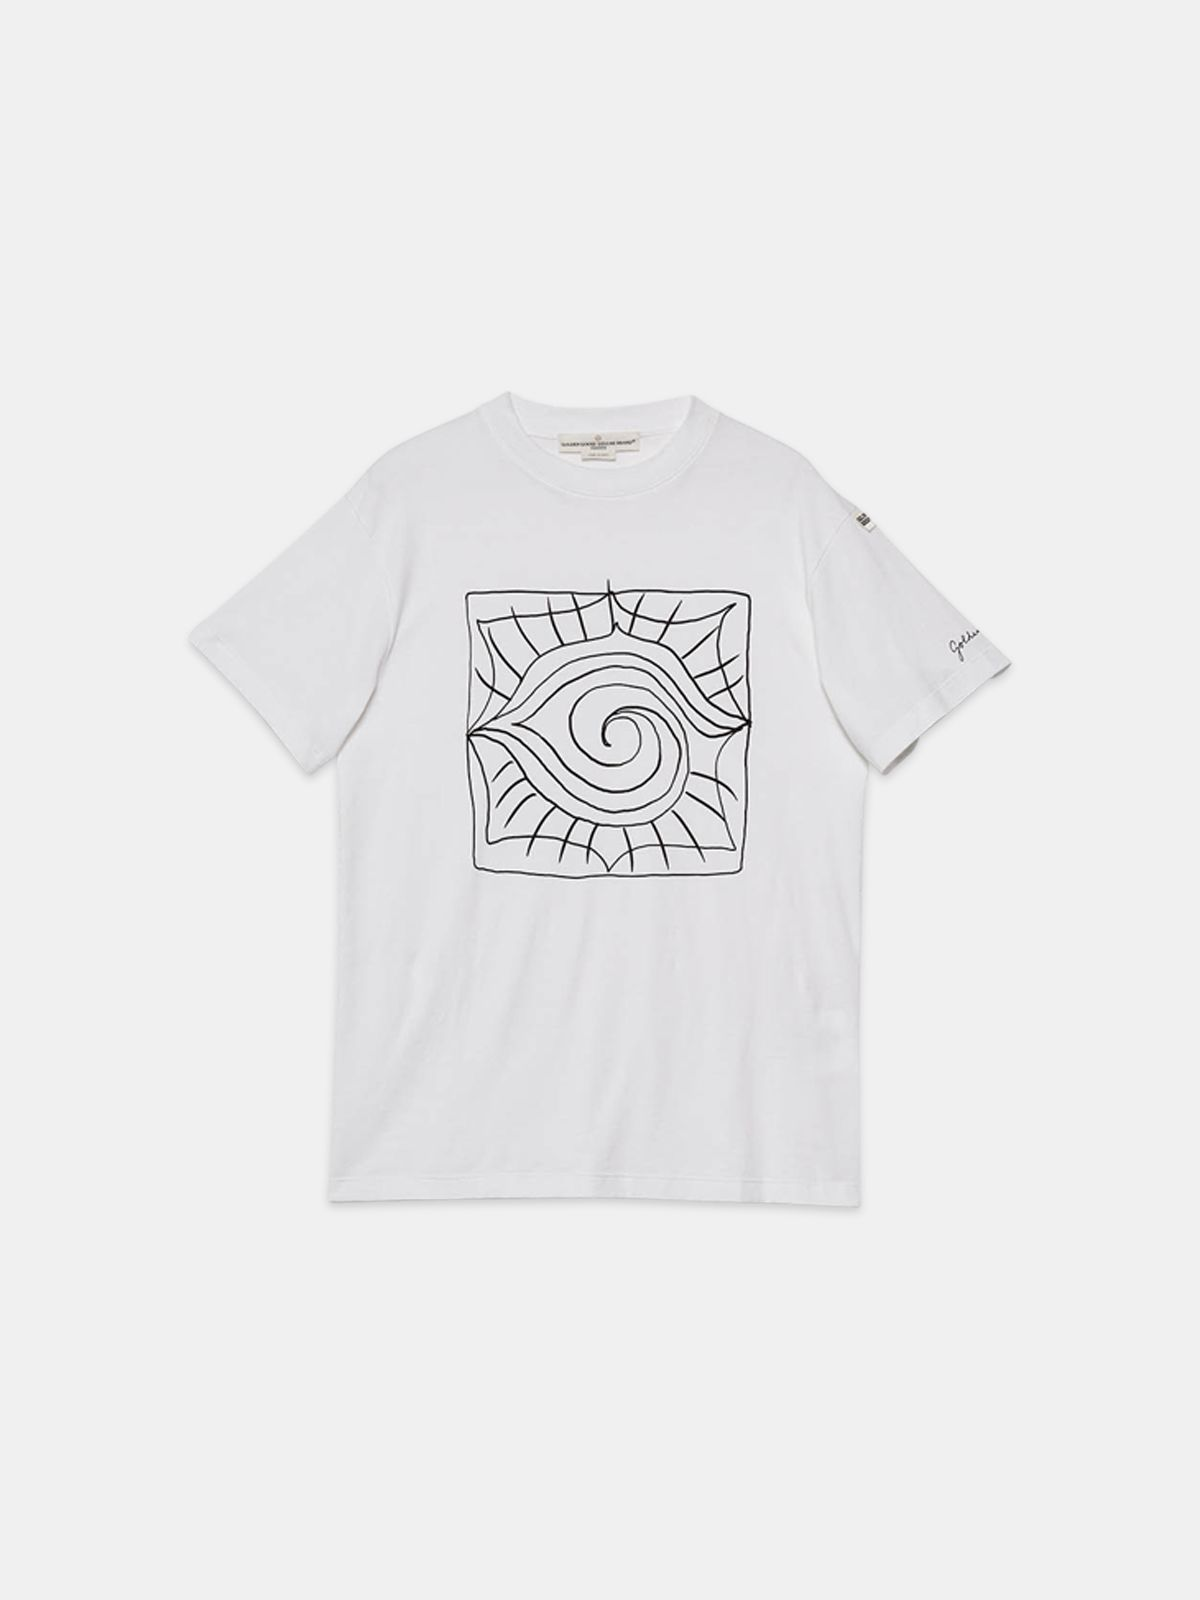 Golden Goose - Golden T-shirt with pattern on the front in